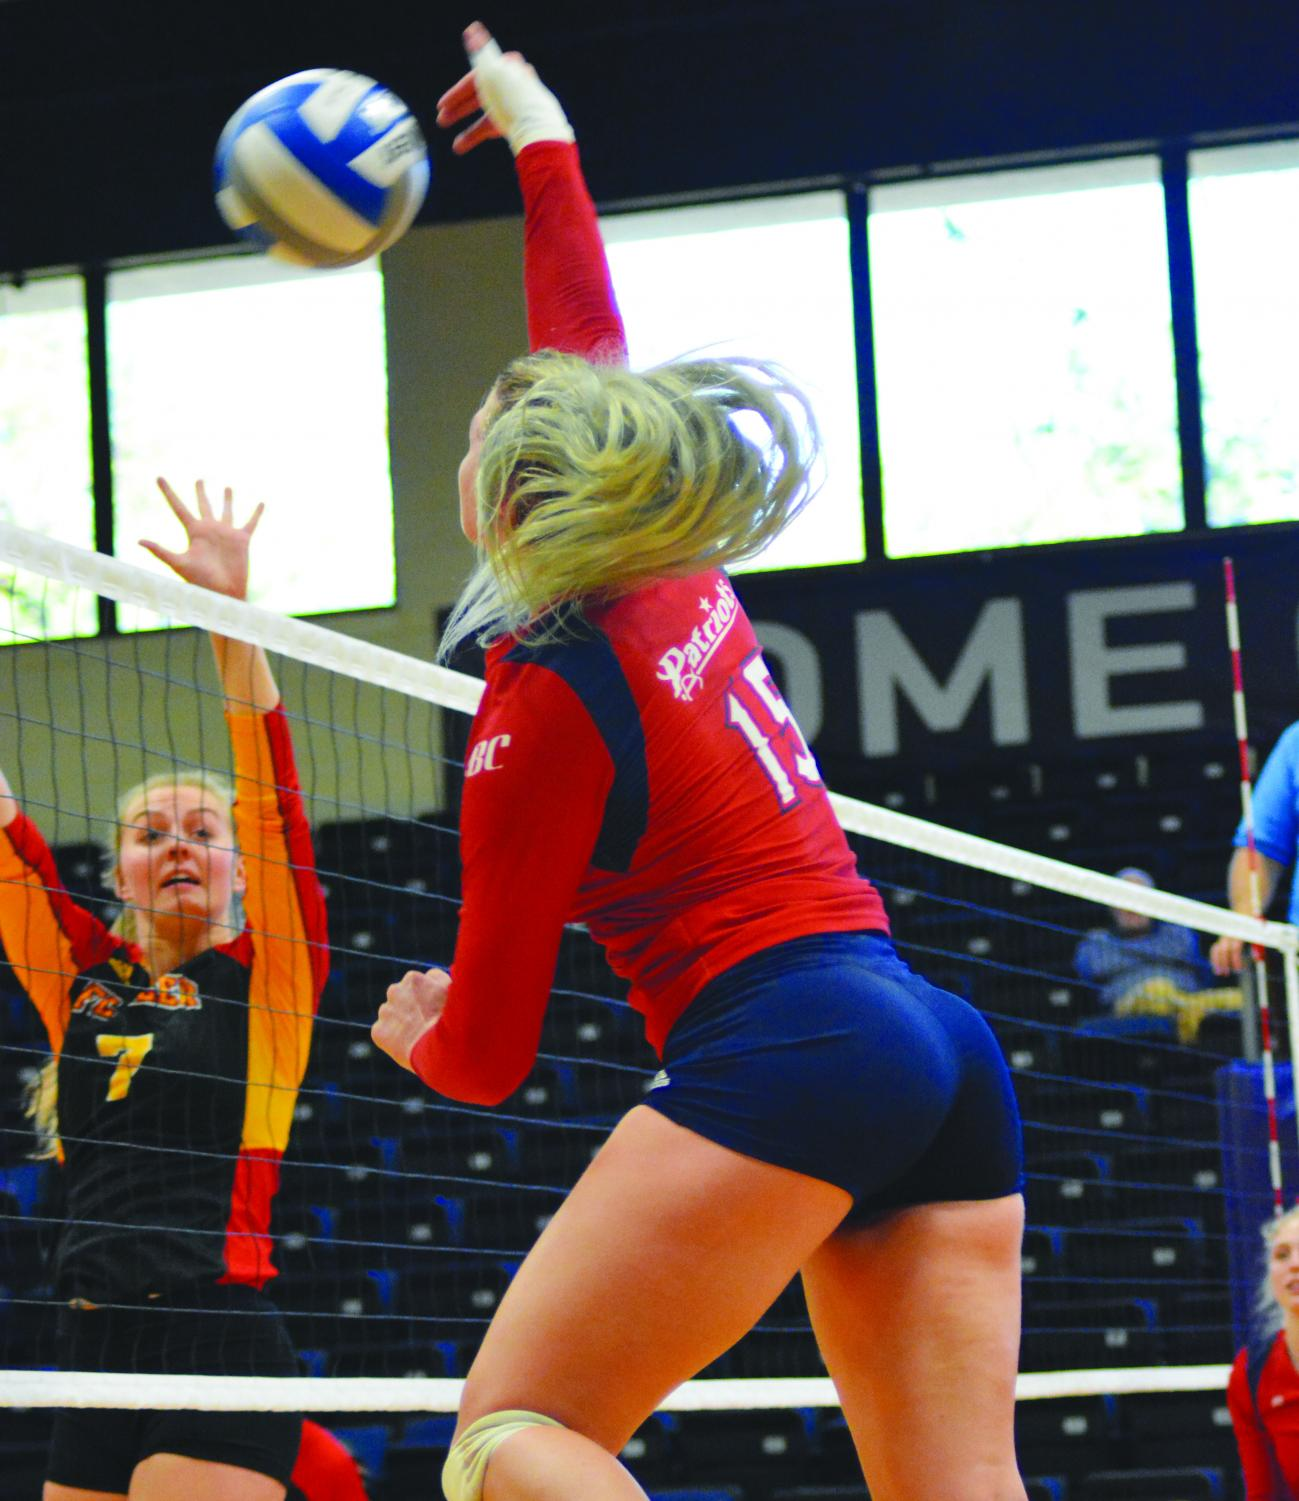 Shelbi Meek spikes the ball during the game against Flagler College. The Nov. 11 game is Meek's last game as a Patriot.